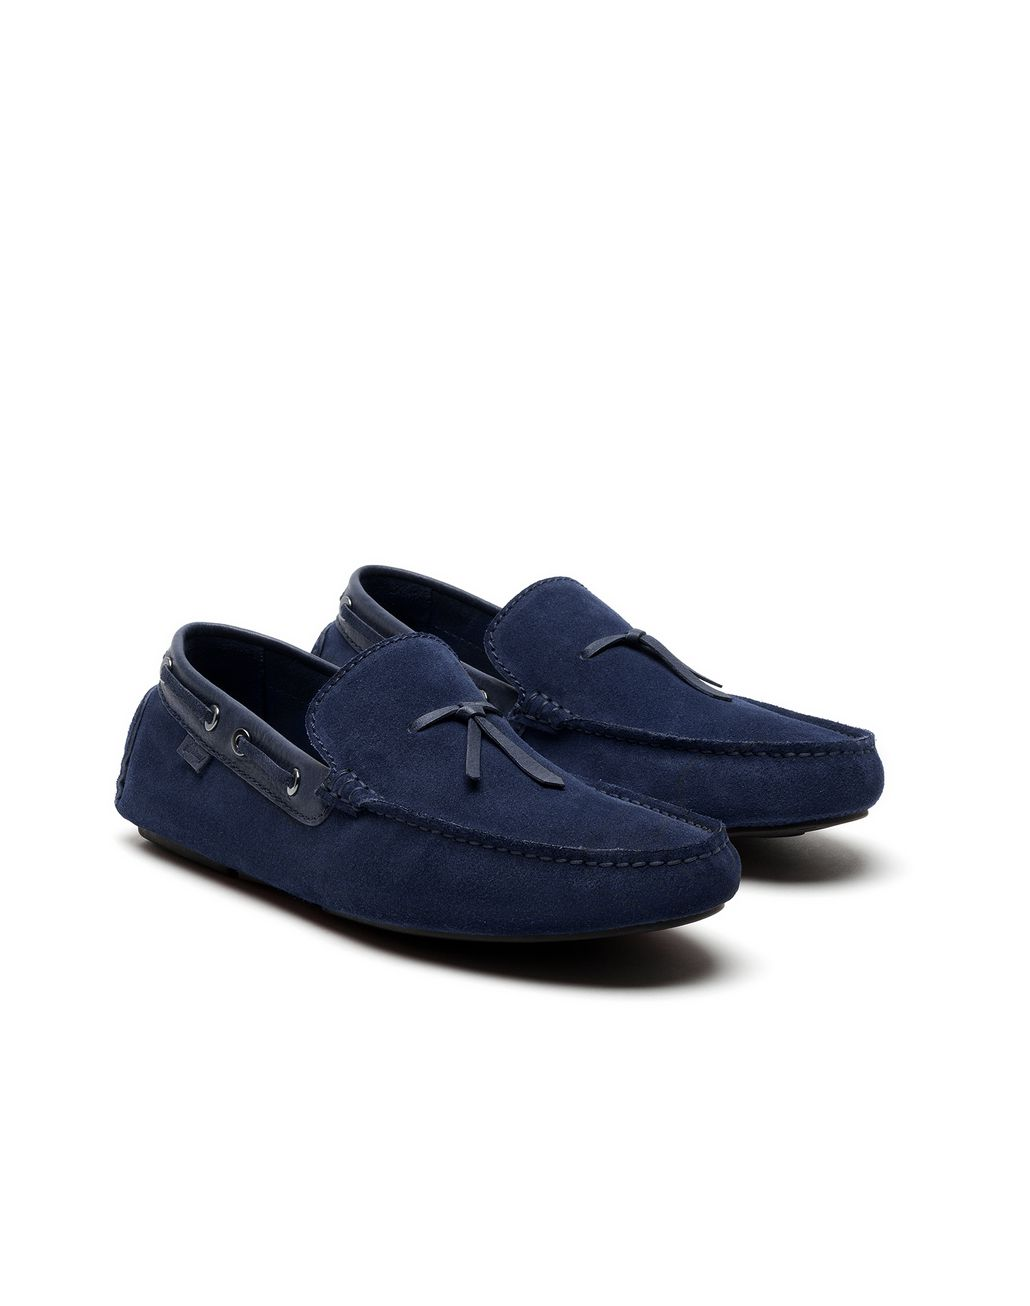 BRIONI Navy-Blue Unlined Calf Suede Loafer Loafers Man d